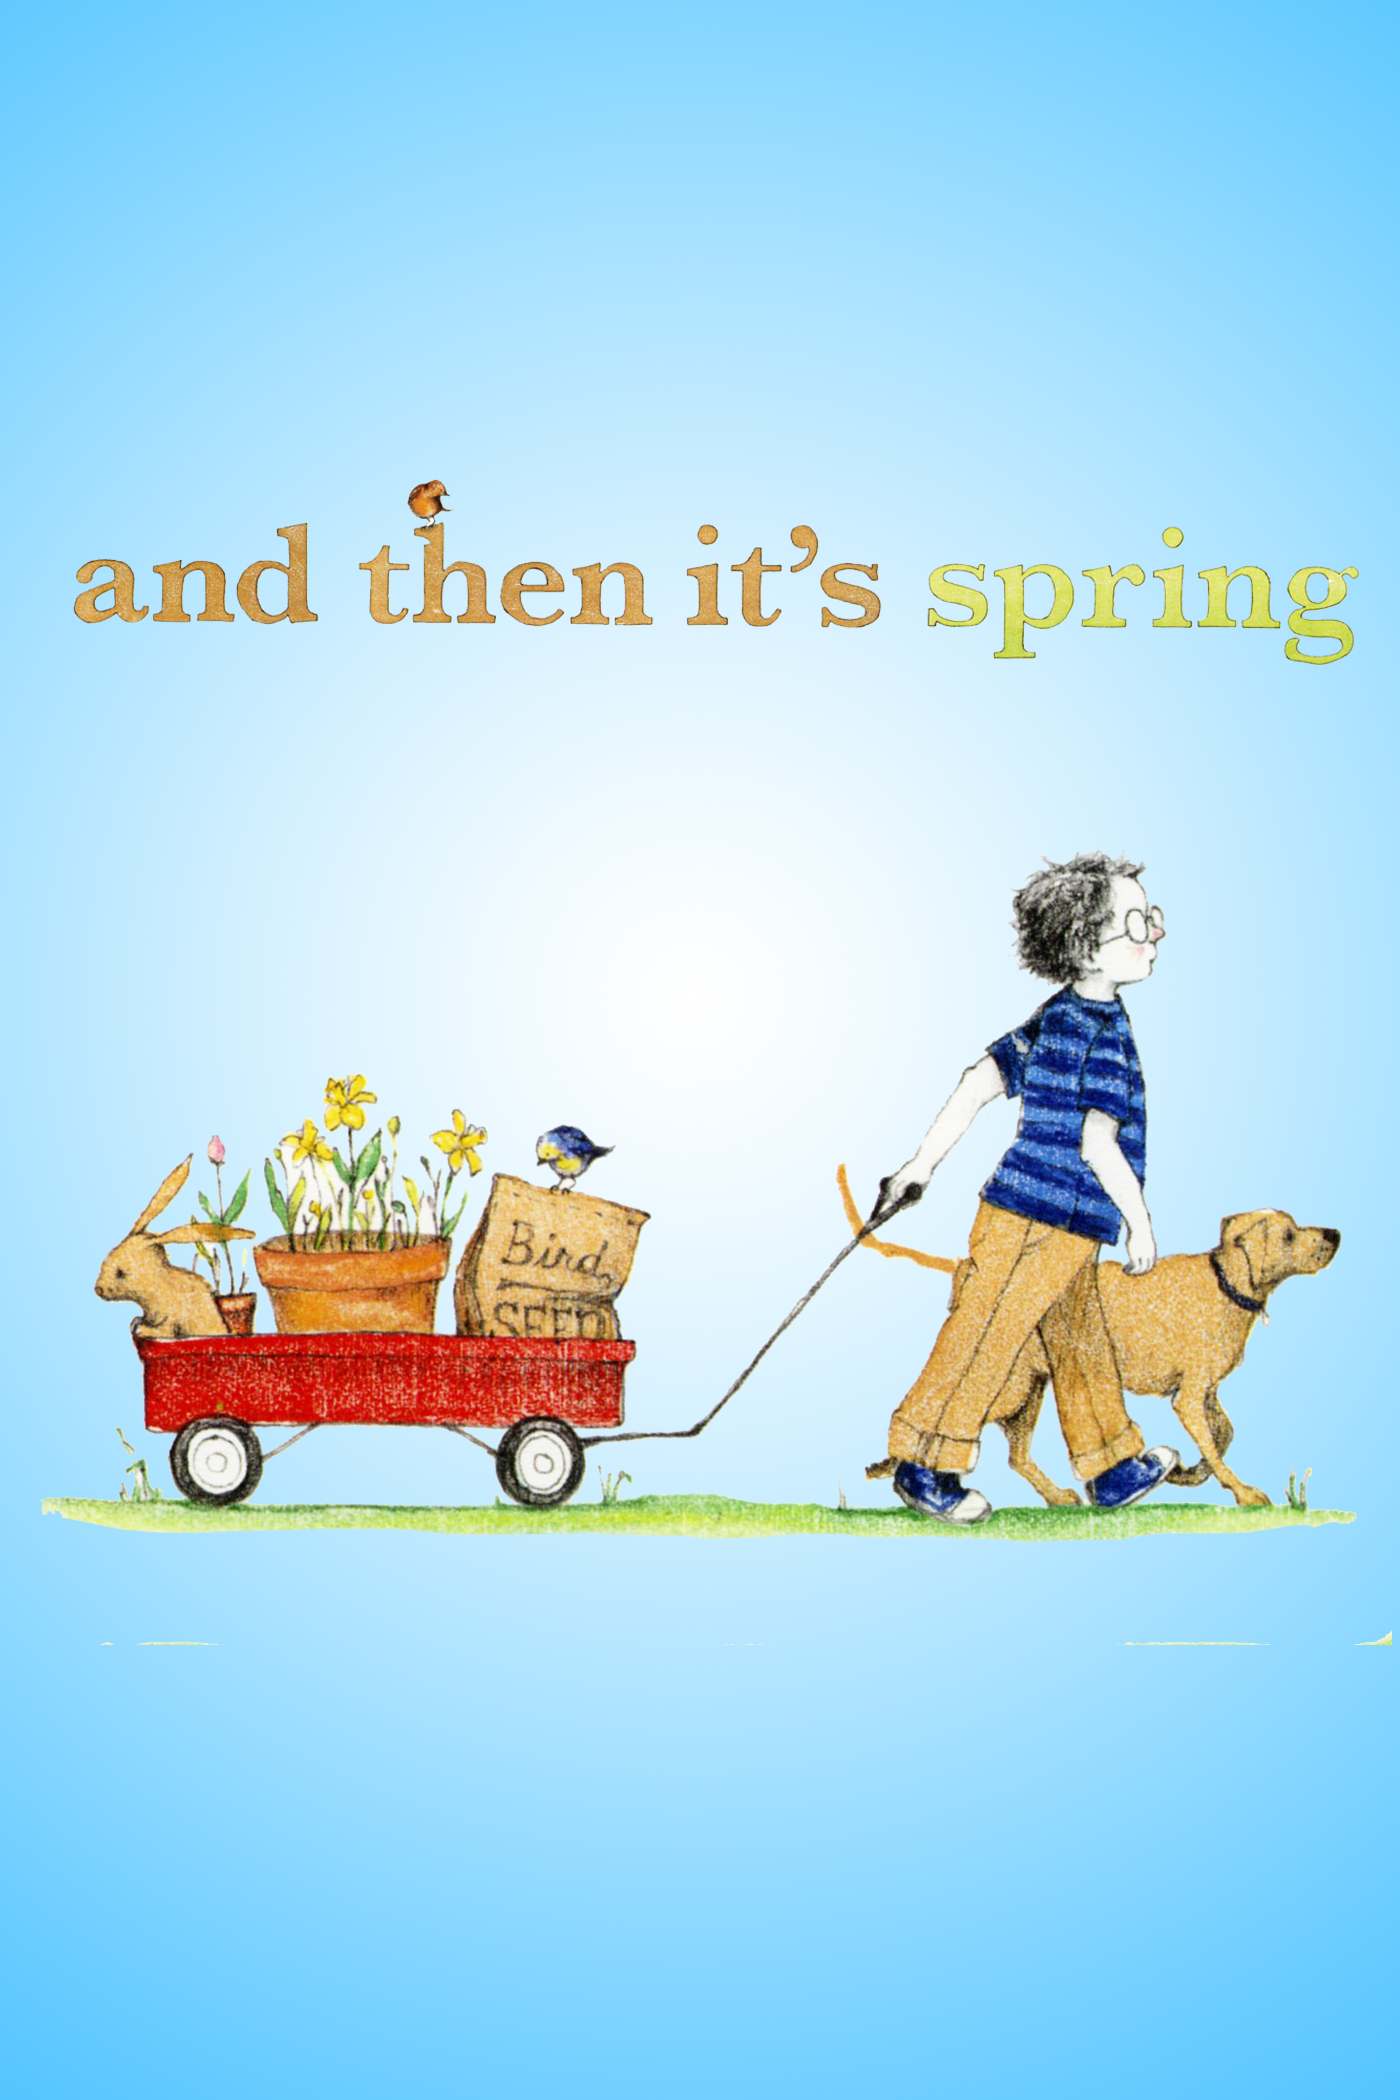 Its Spring!